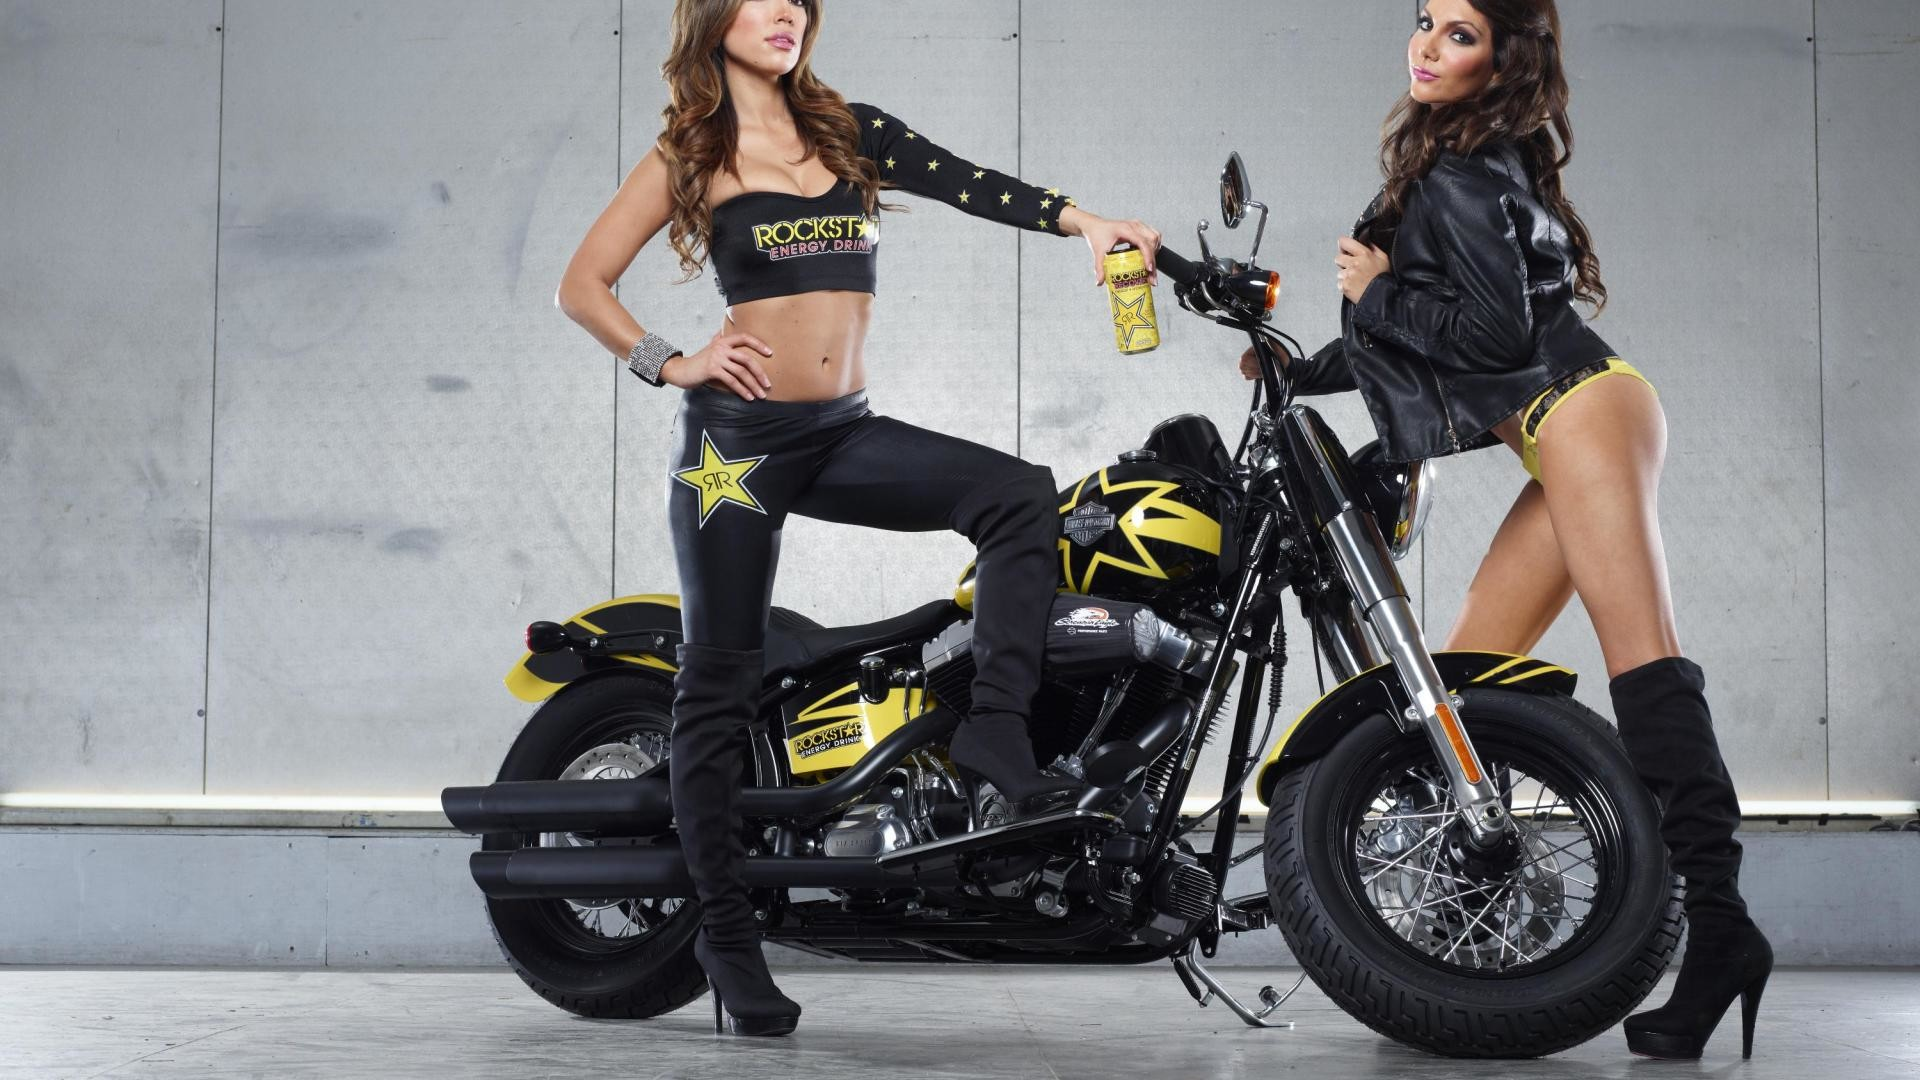 Res: 1920x1080, 228329918 Rockstar Energy Girls Wallpapers - Rockstar Energy Girls  Backgrounds